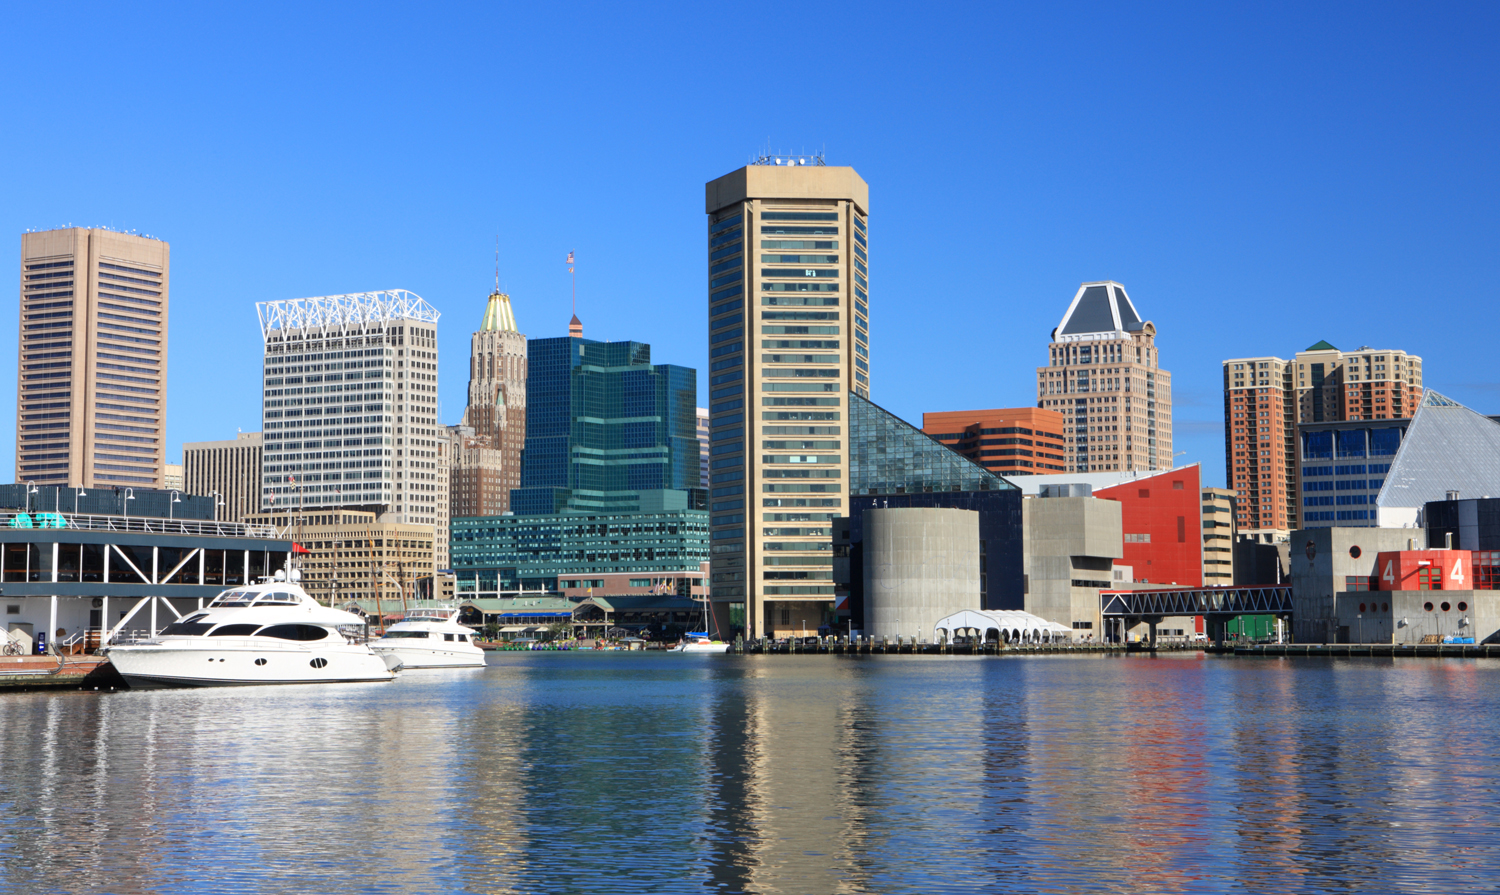 Image: Baltimore, Md.